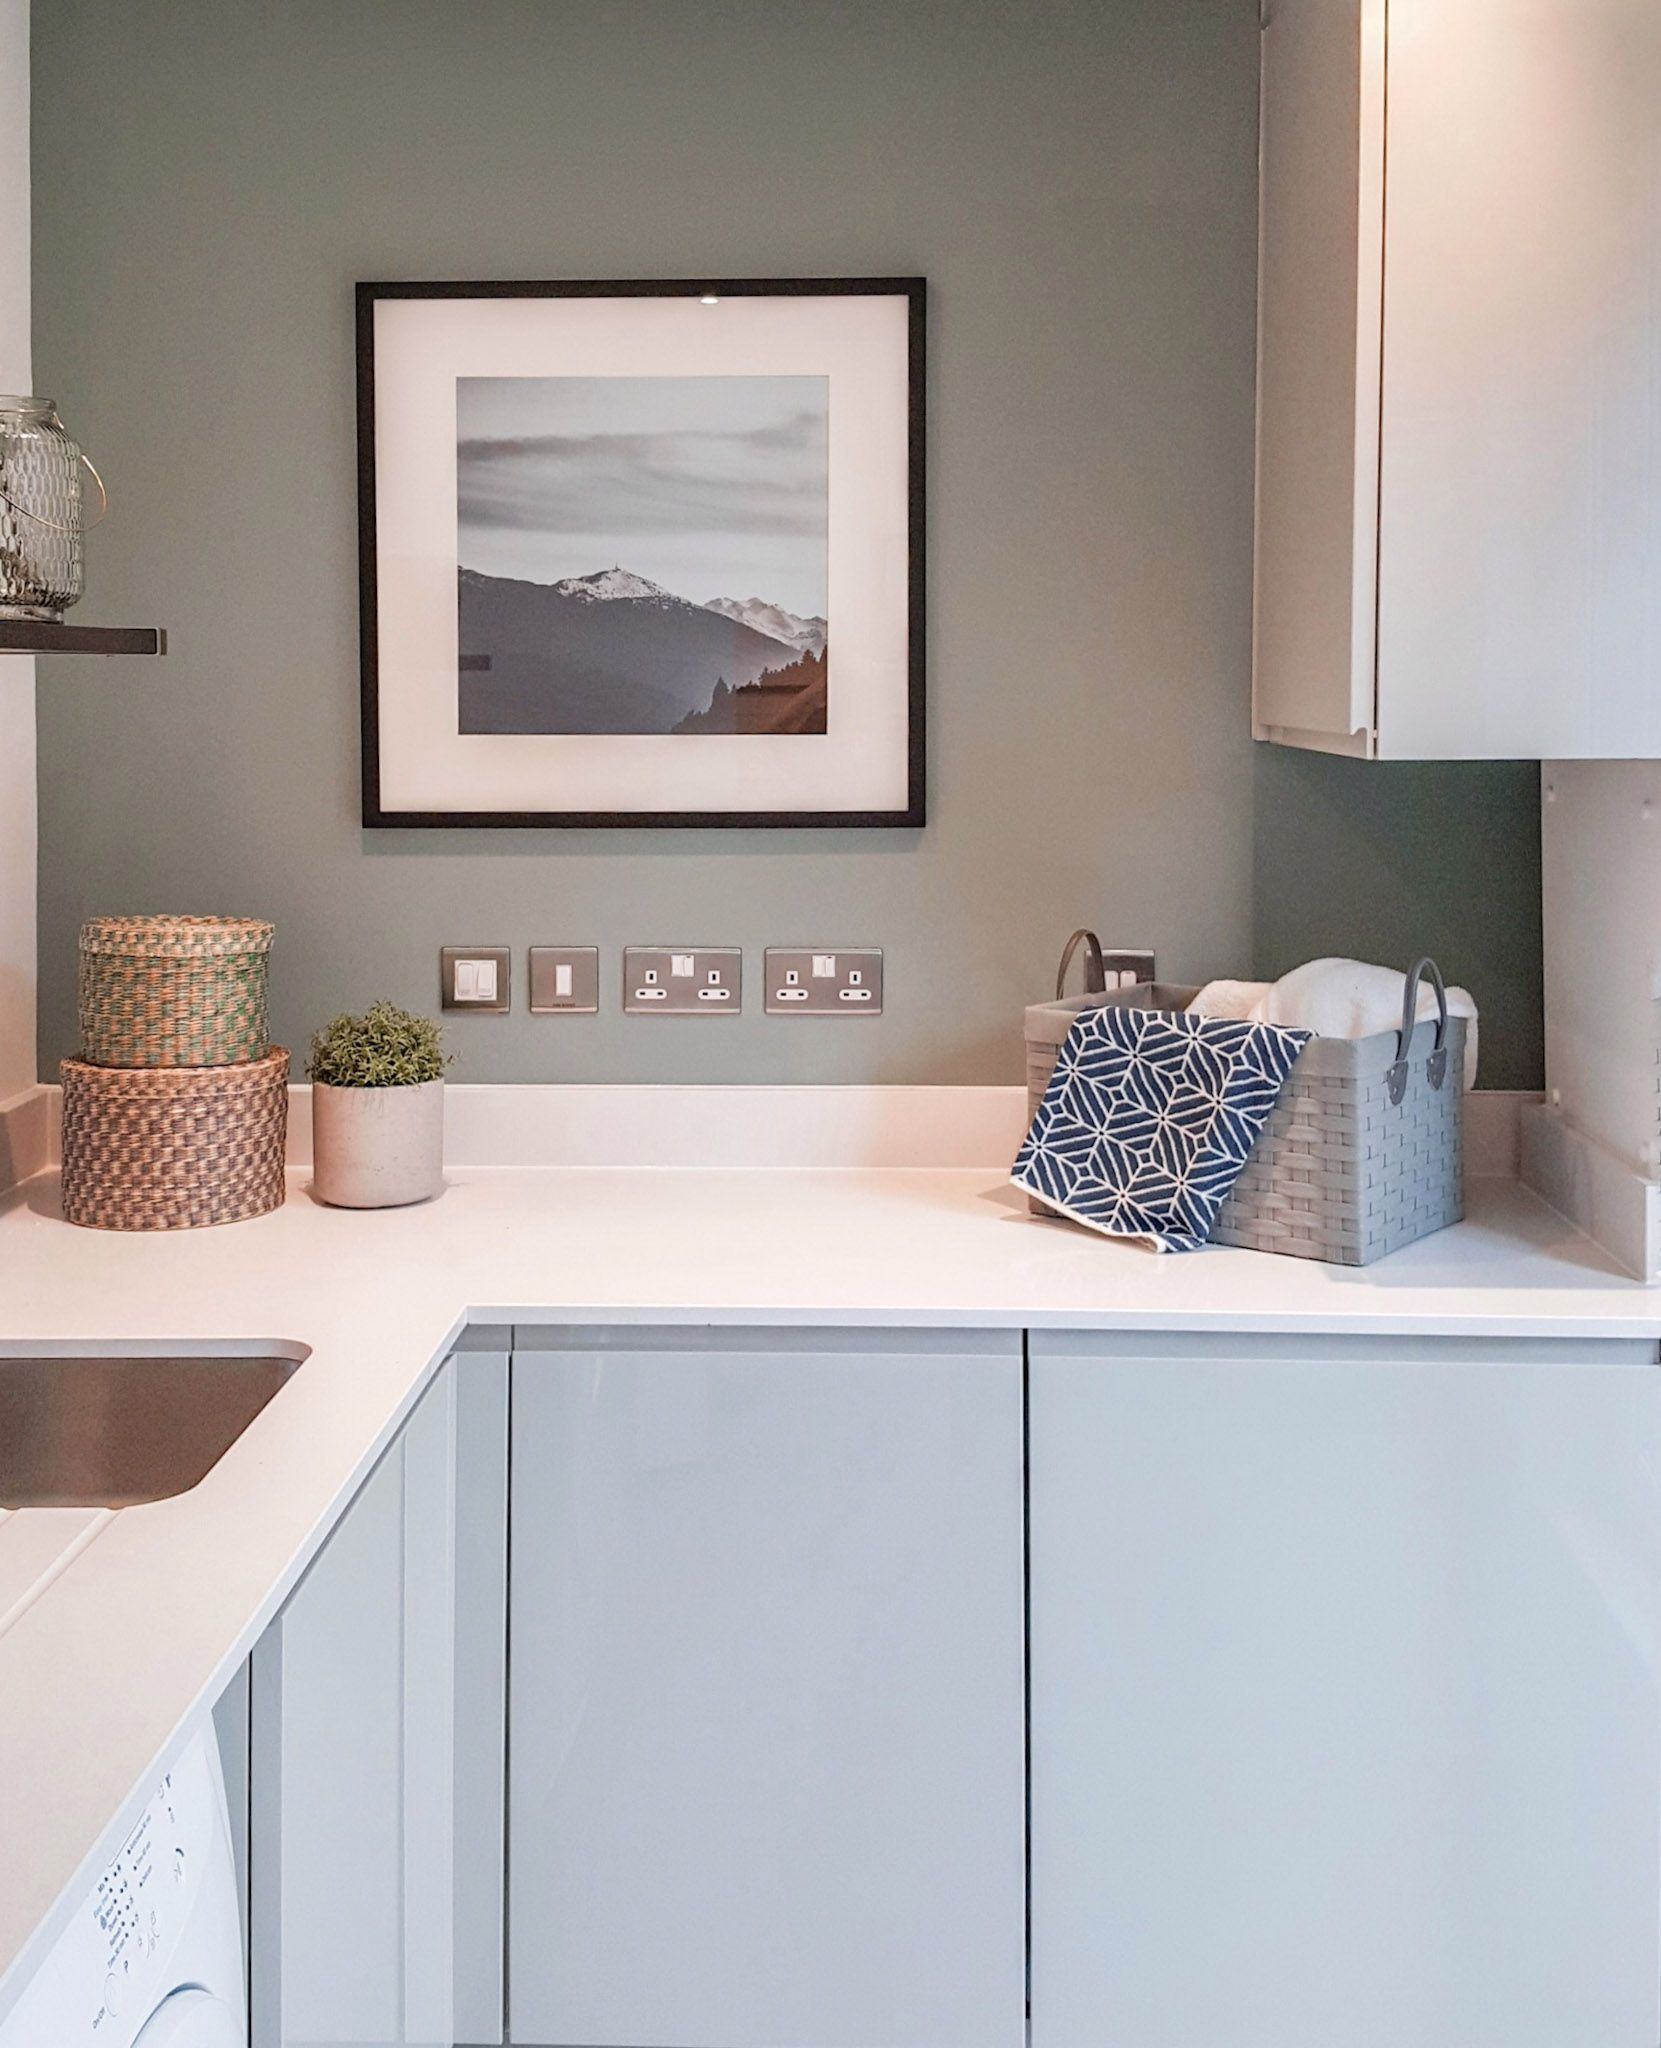 New Build Utility Laundry Room Sage Green Kitchen Walls Green Kitchen Walls Home Kitchens